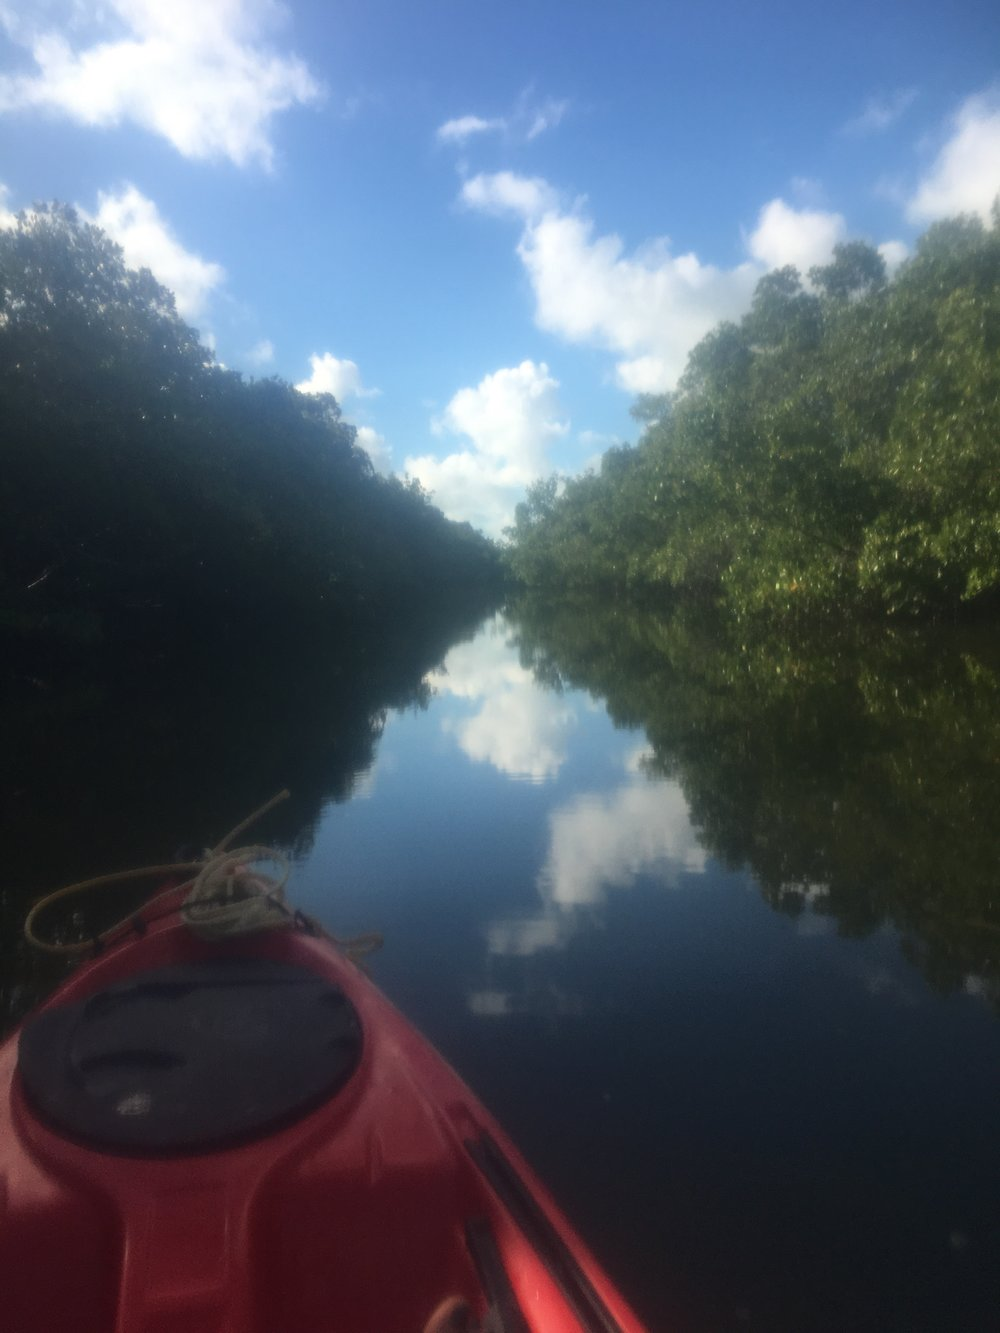 Kayaking in the mangroves along the Calusa Blueway in Ft Myers.